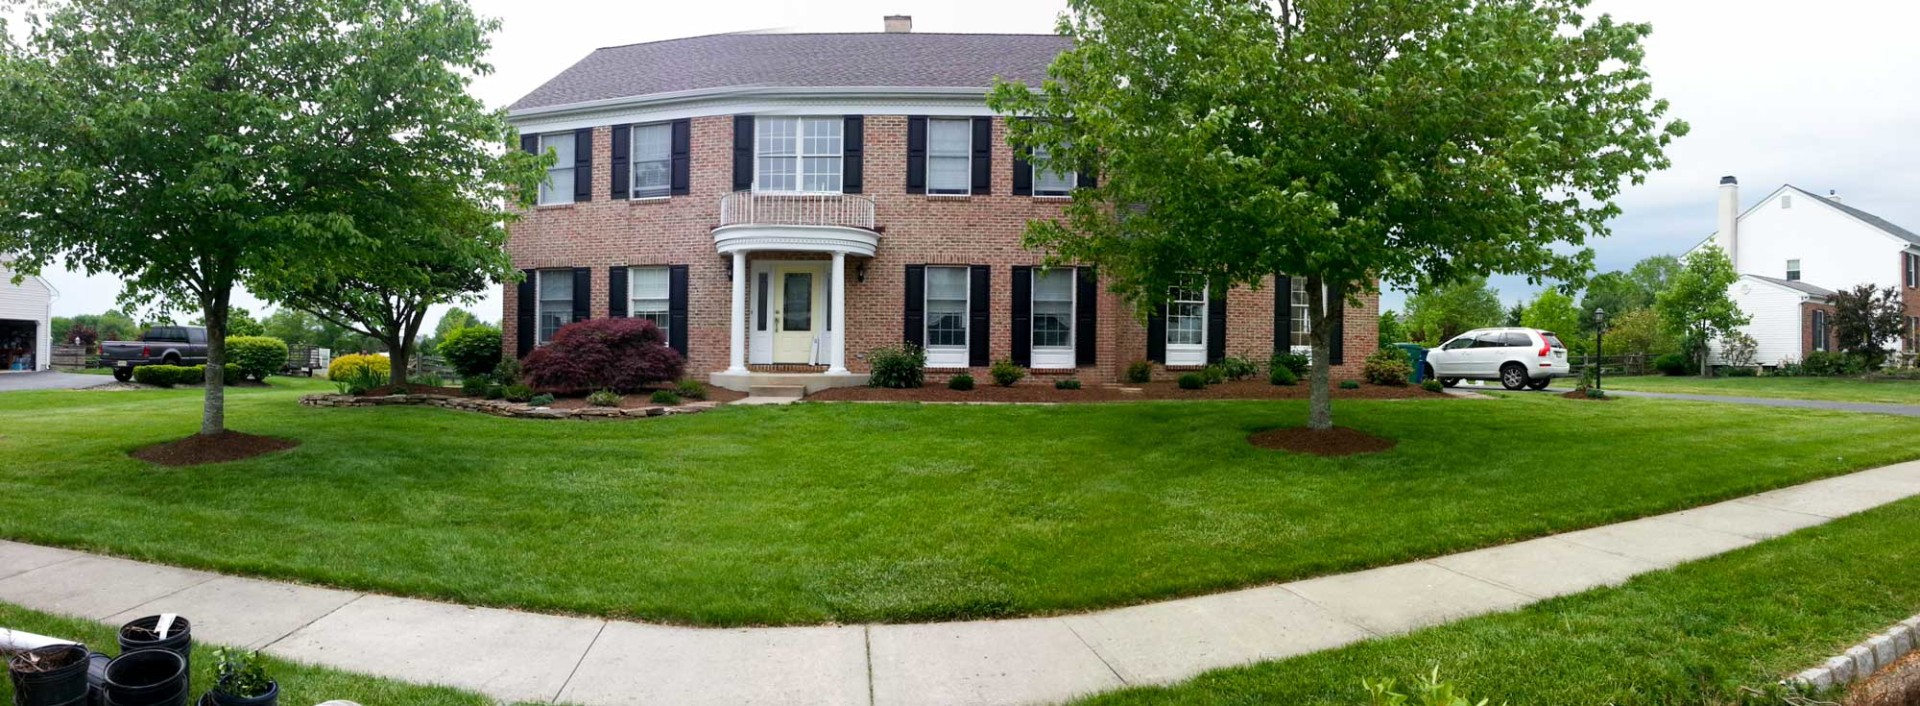 Blending The Old And New In Landscaping Country Lawn